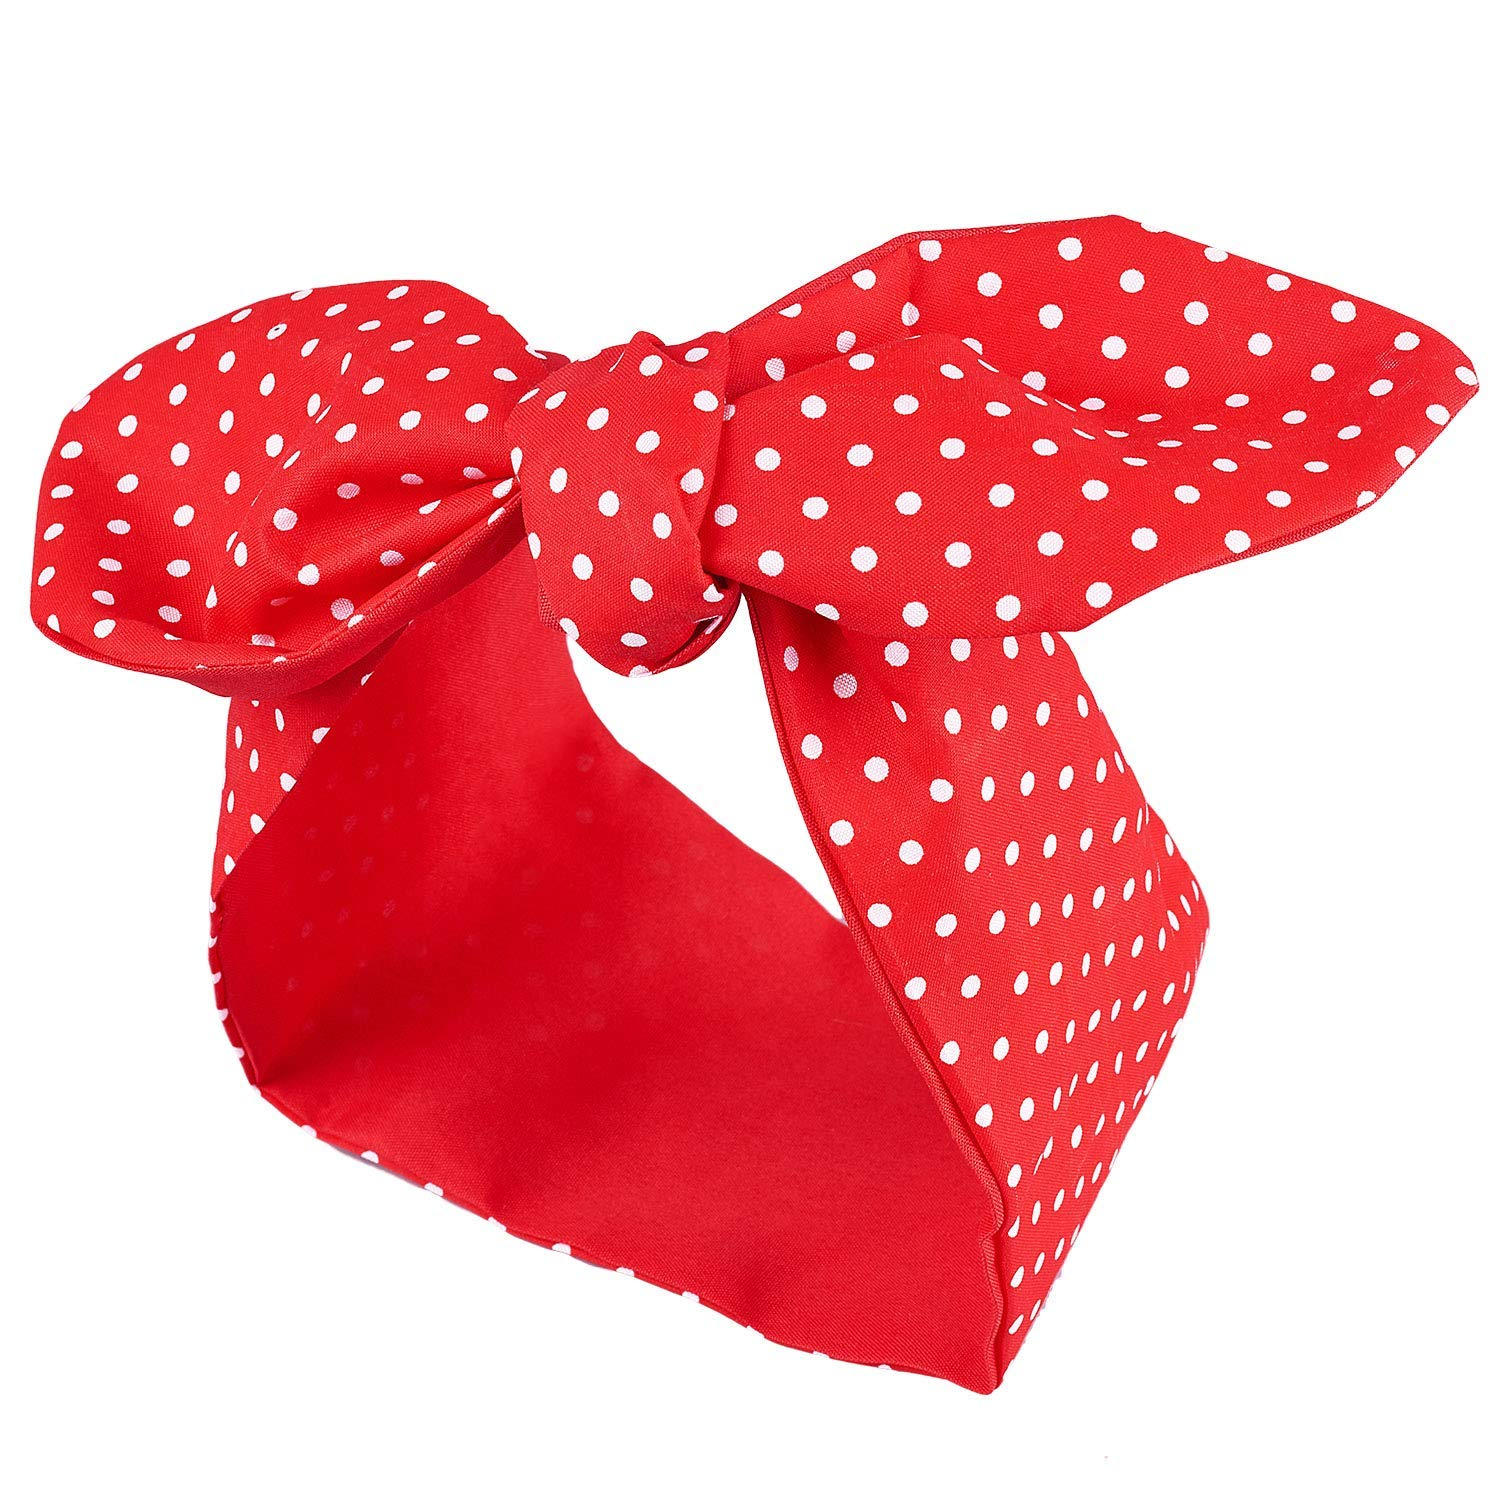 1940s Hair Snoods- Buy, Knit, Crochet or Sew a Snood Red Bow Cotton Headband Red Polka Dot Headband Retro Bowknot Headband Double Wide Headwrap for Women and Girls $9.99 AT vintagedancer.com